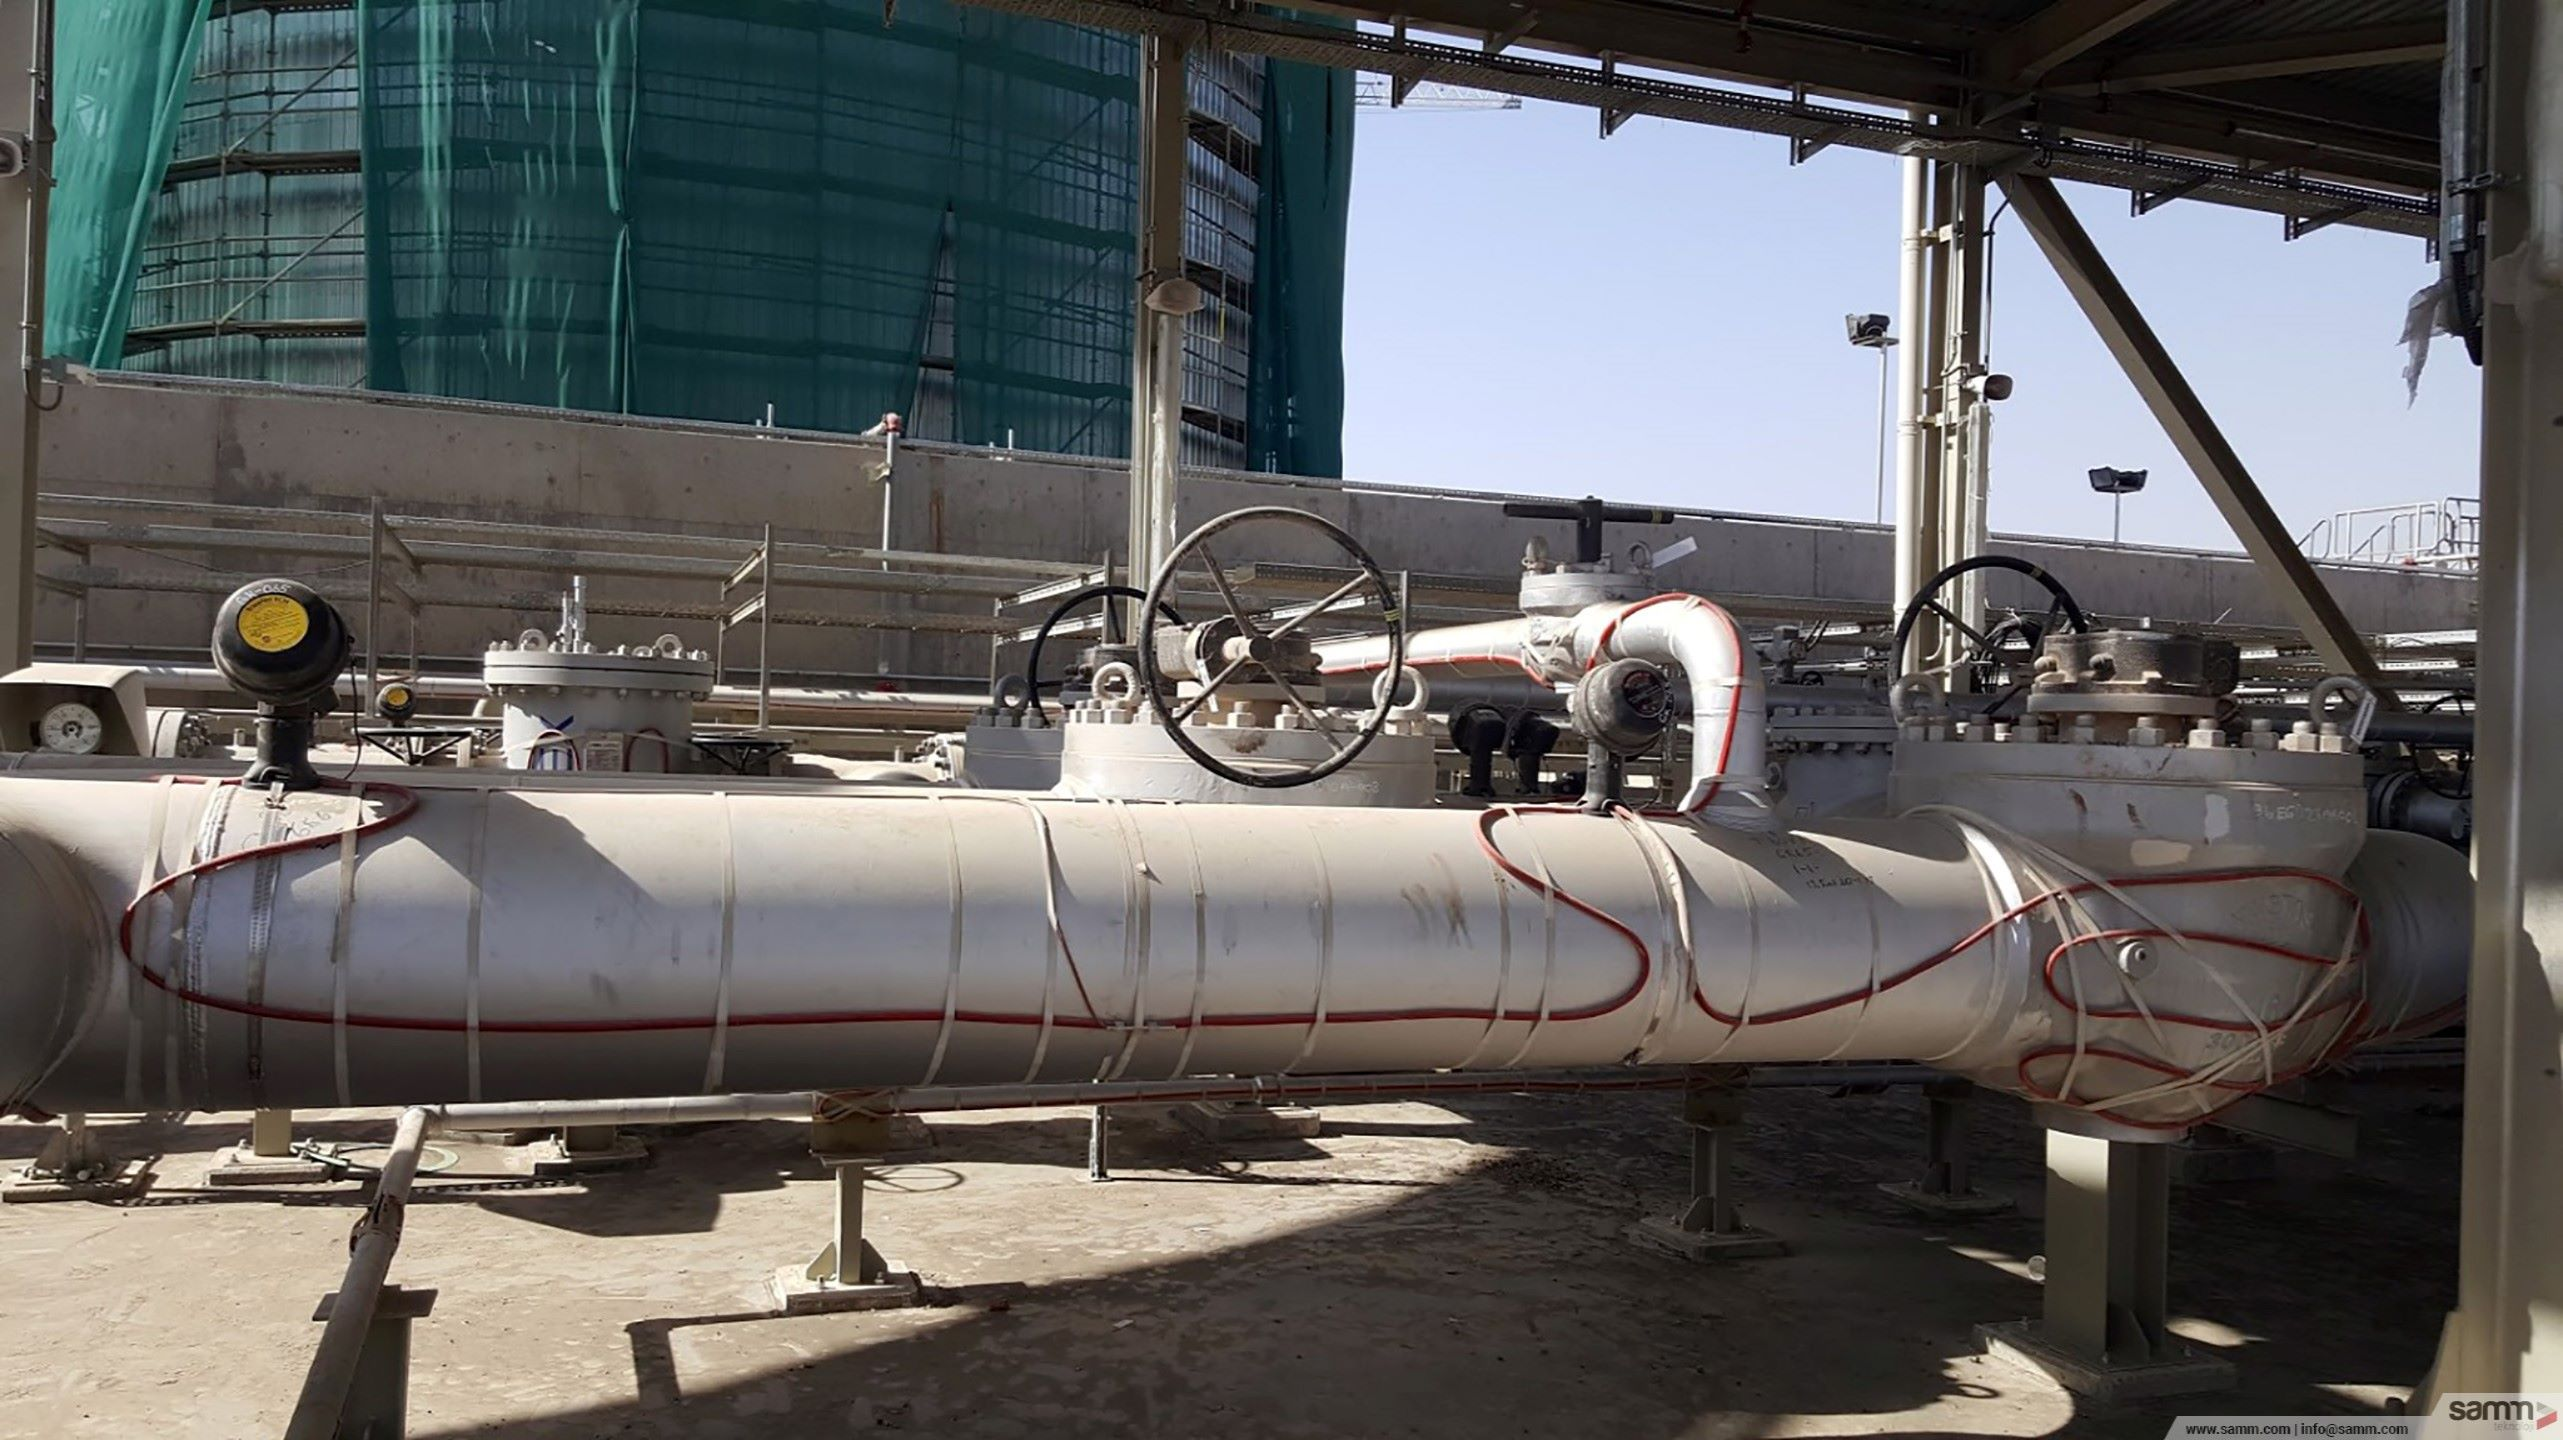 Samm Teknoloji | Heat tracing installation on pipeline seperator.